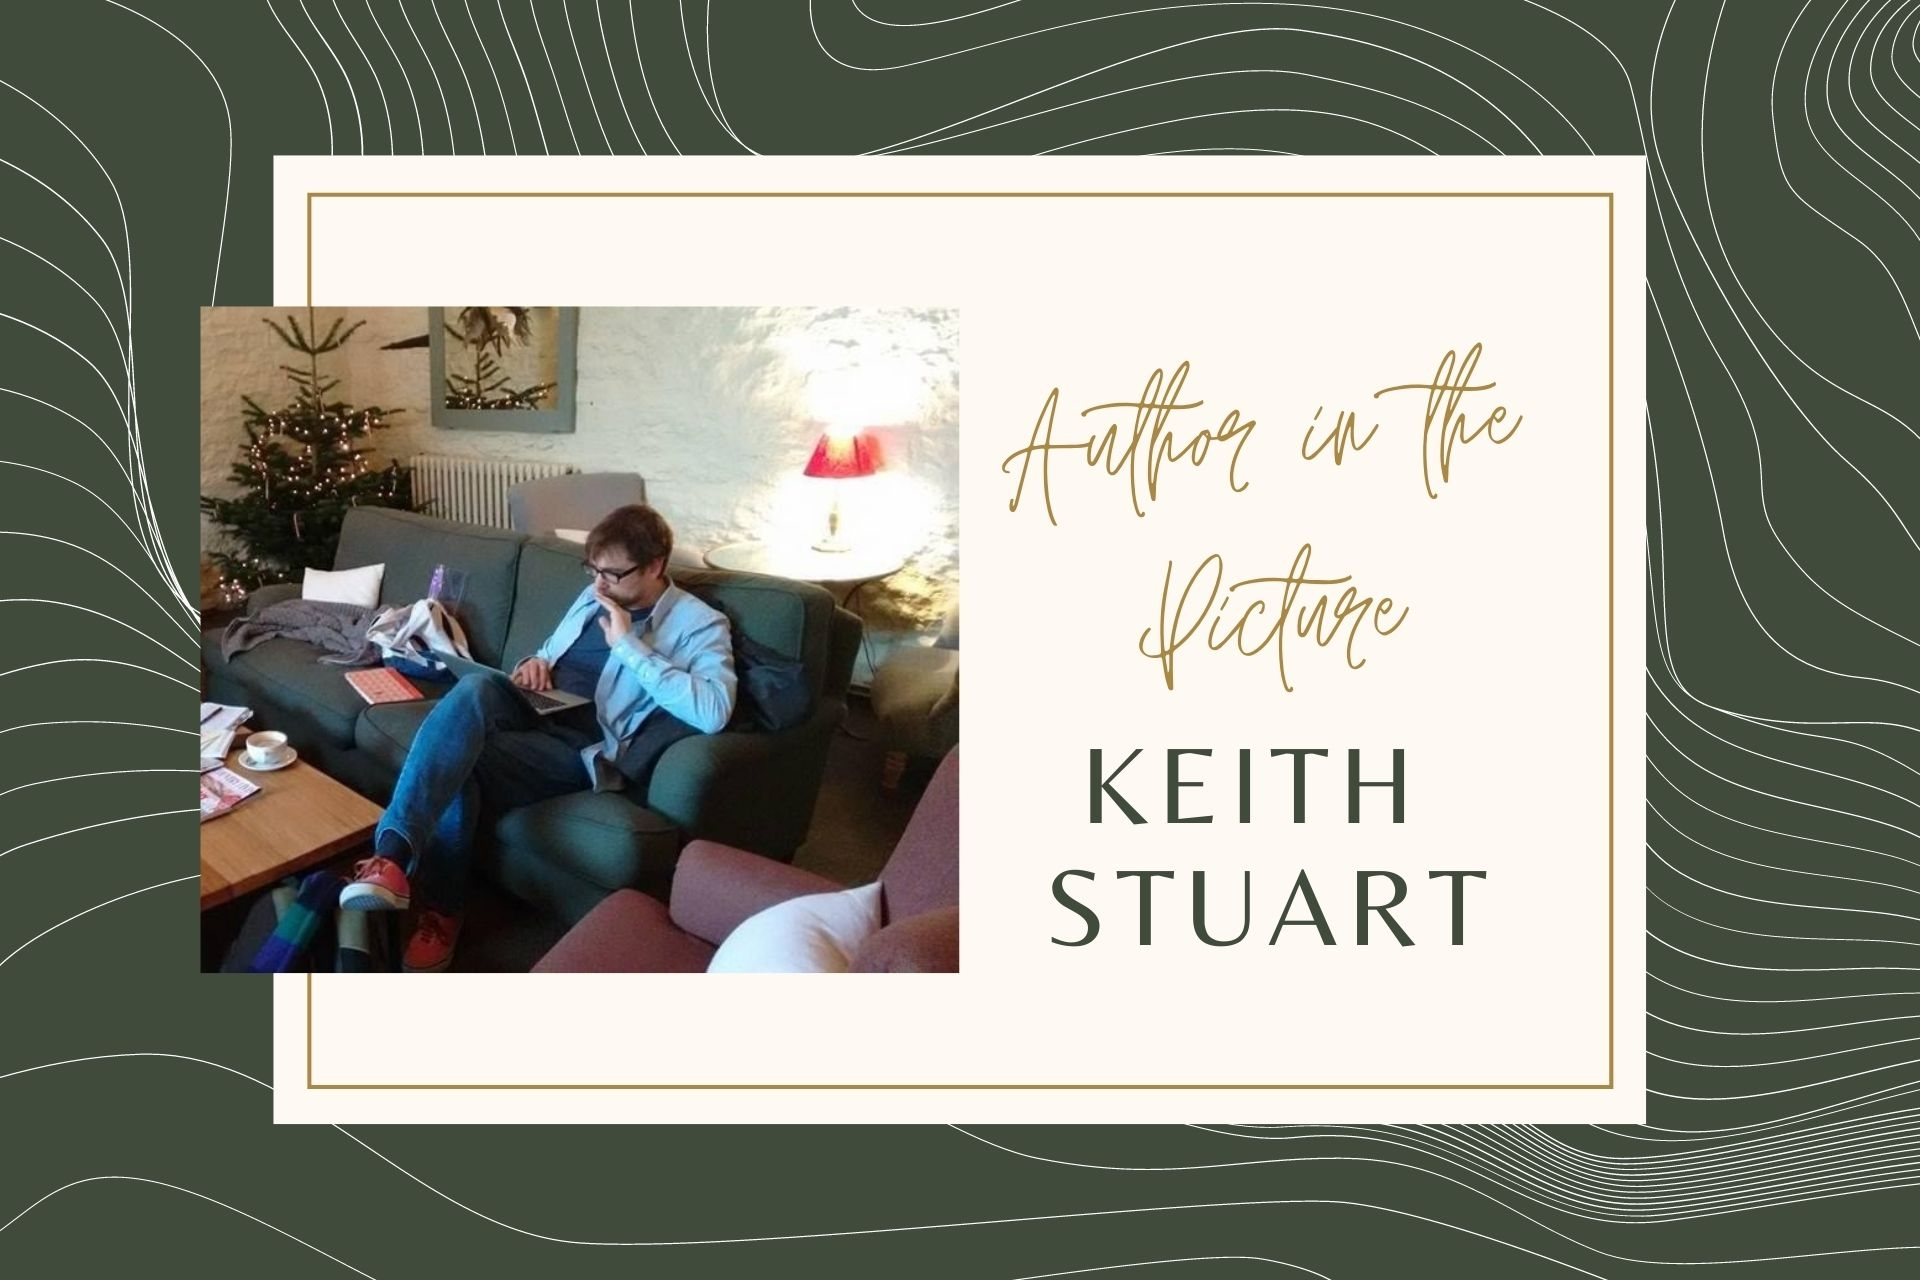 Putting Authors in the Picture #29: Keith Stuart